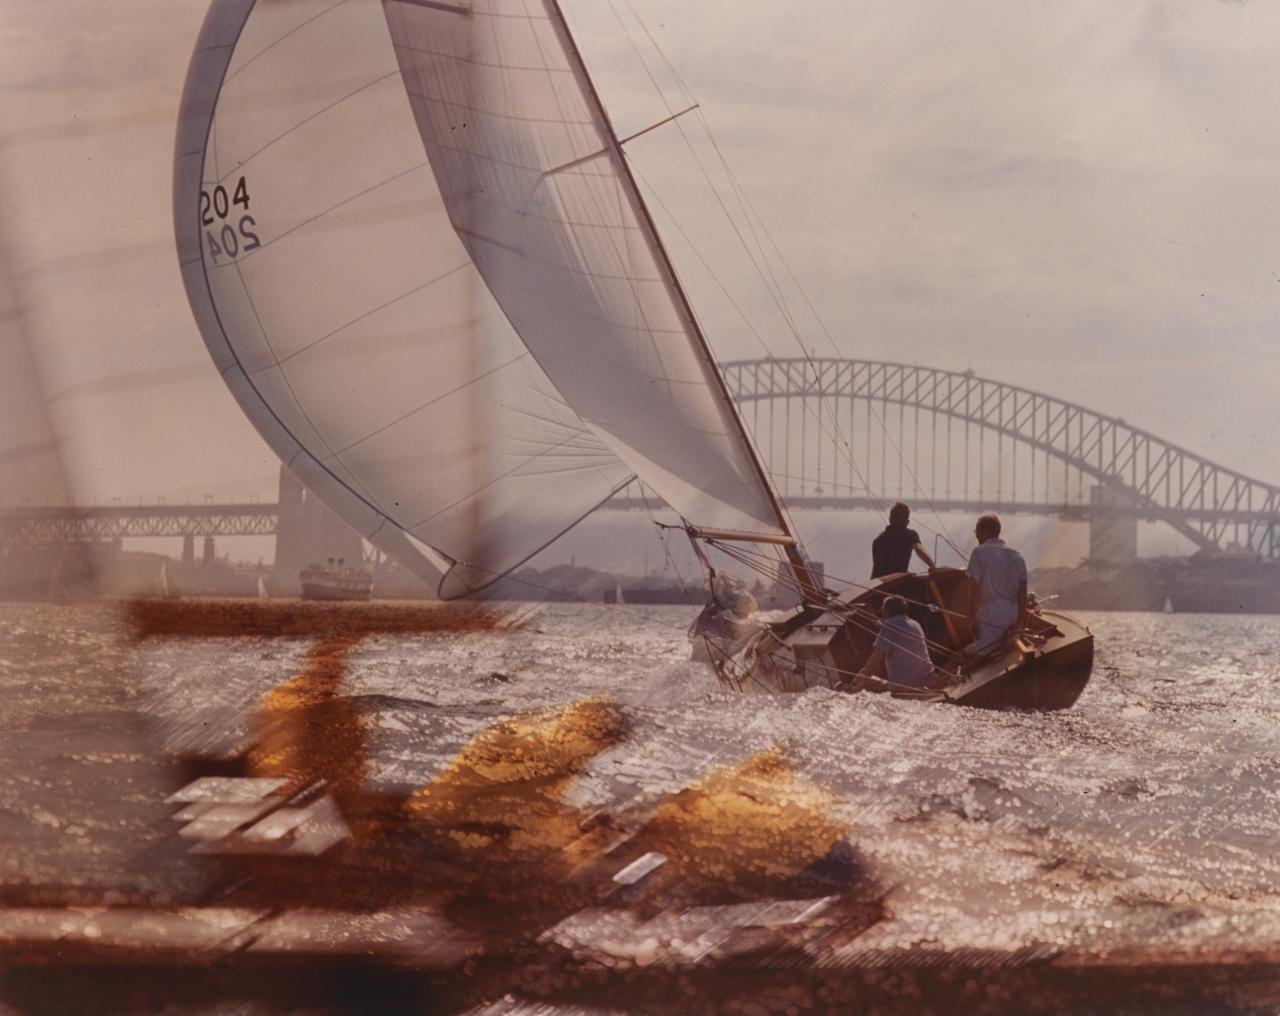 Yacht racing, Sydney Harbour